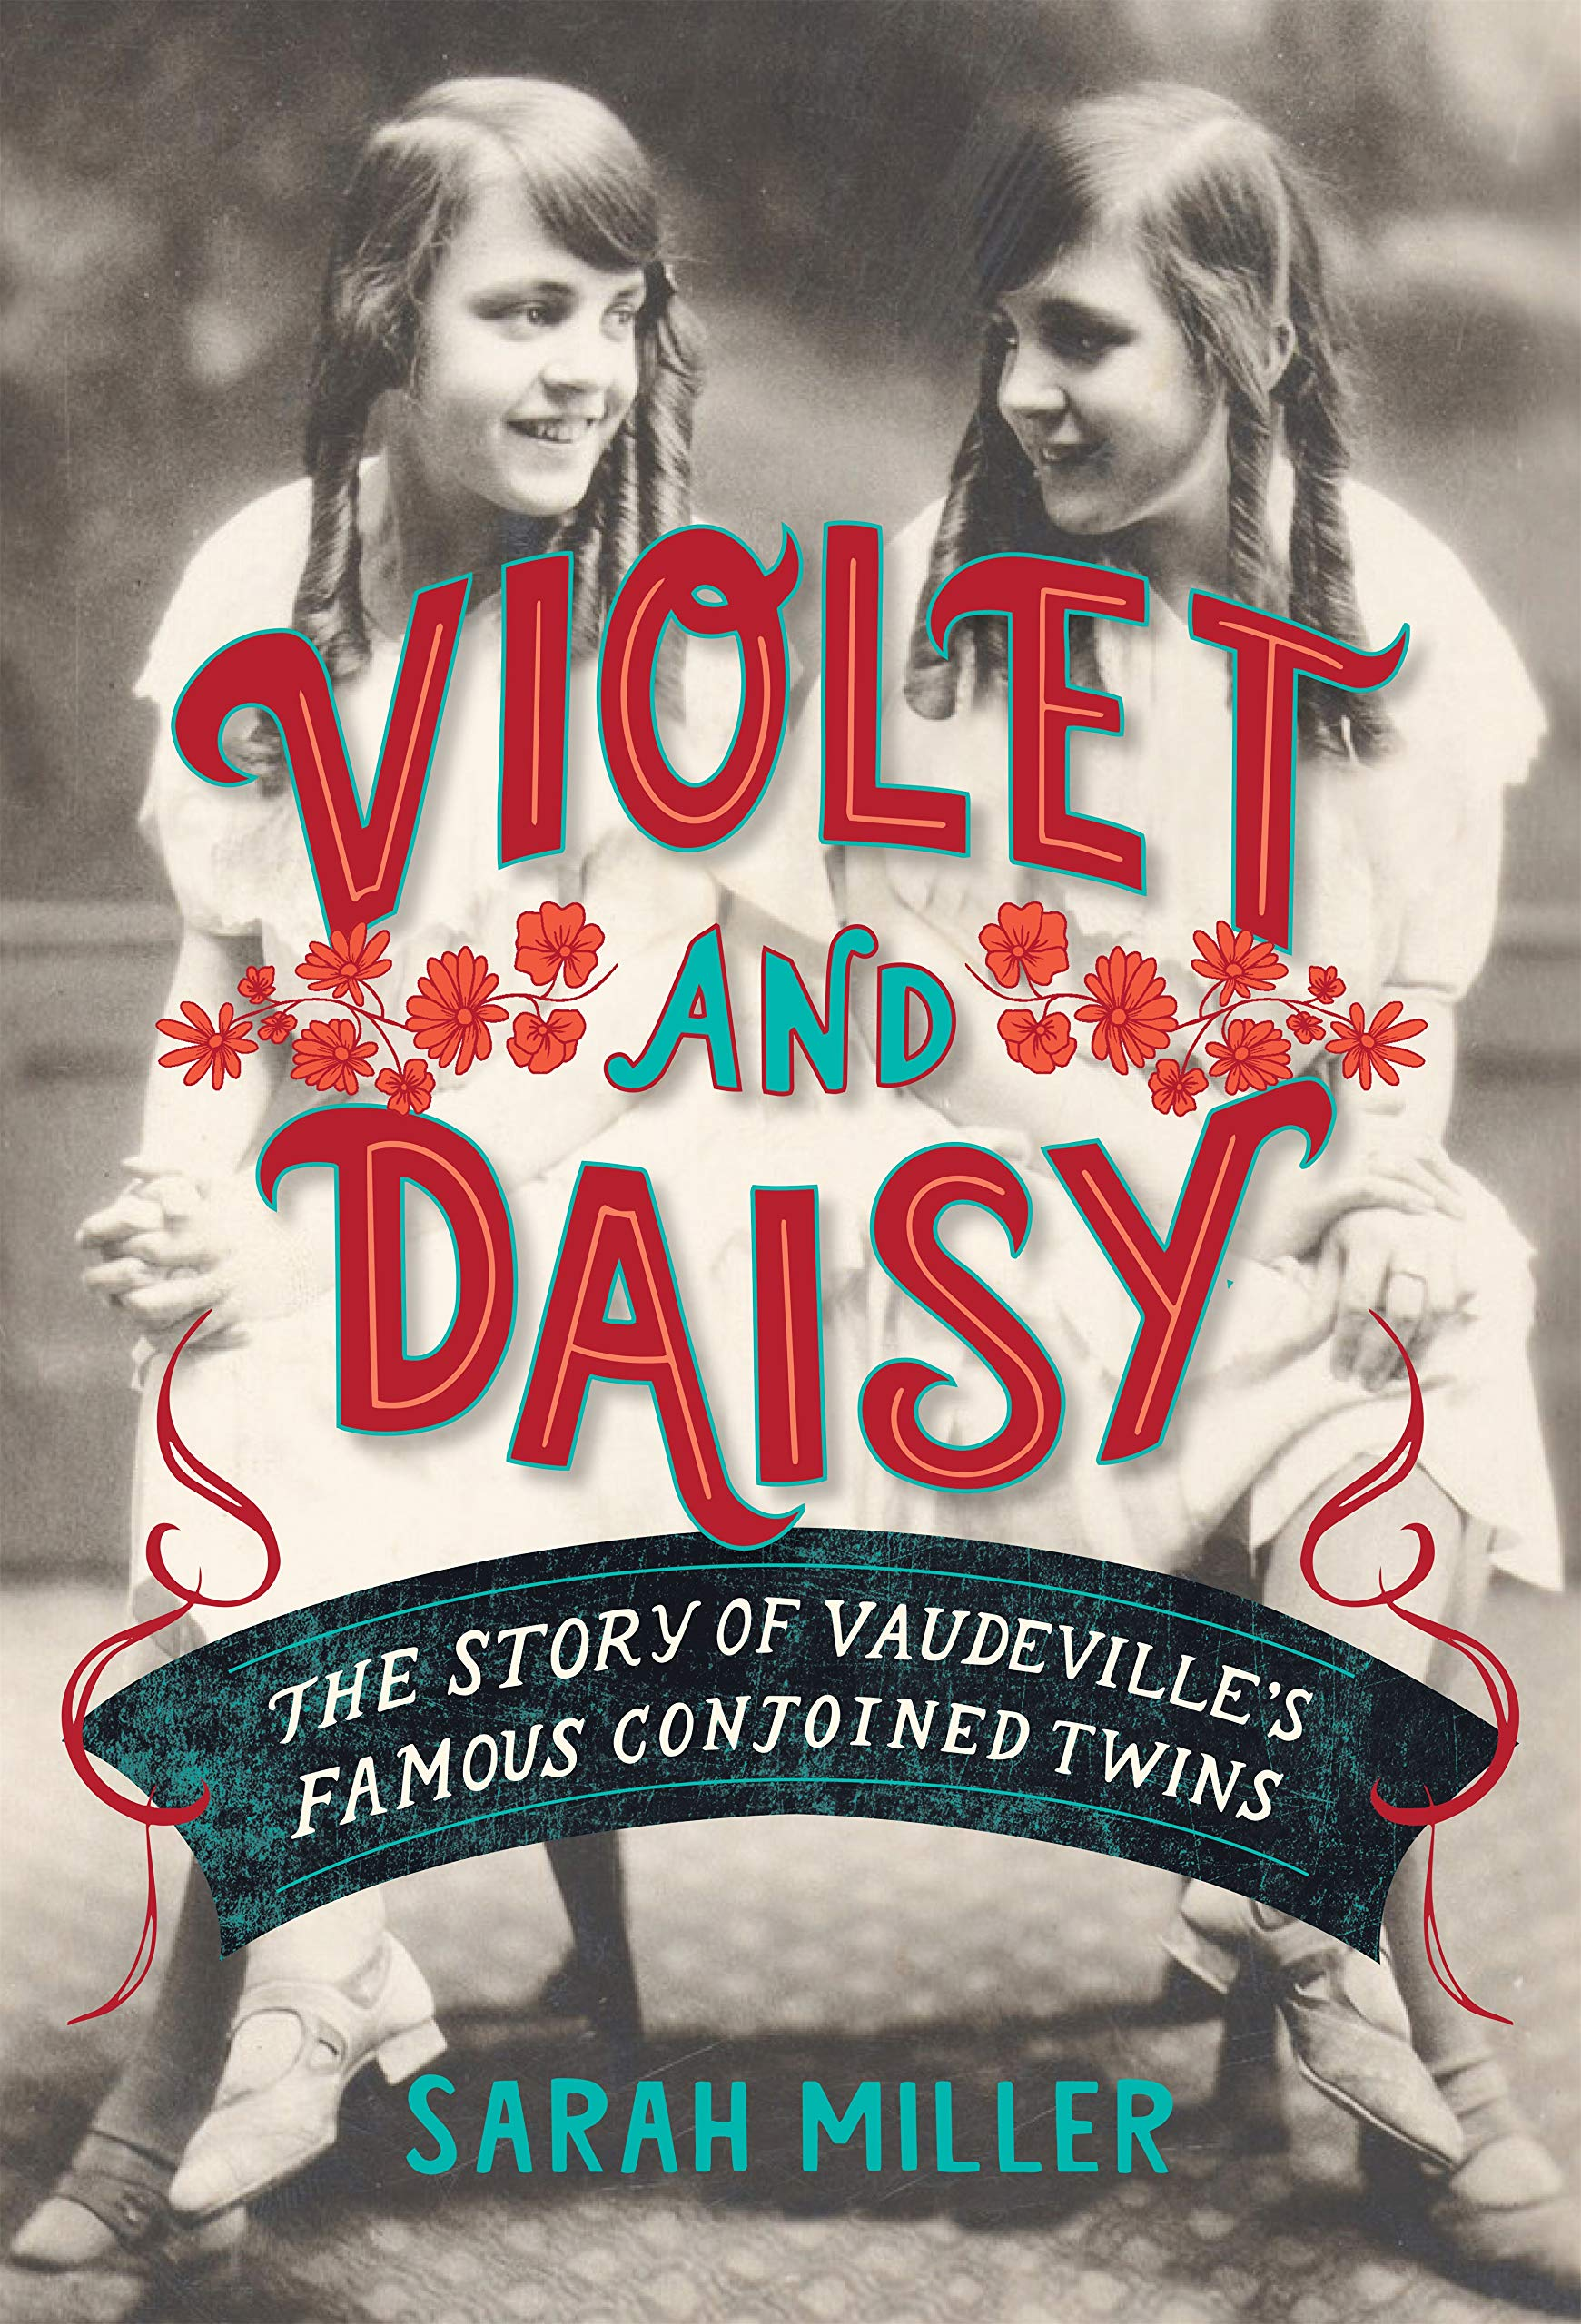 Violet & Daisy: The Story of Vaudeville's Famous Conjoined Twins